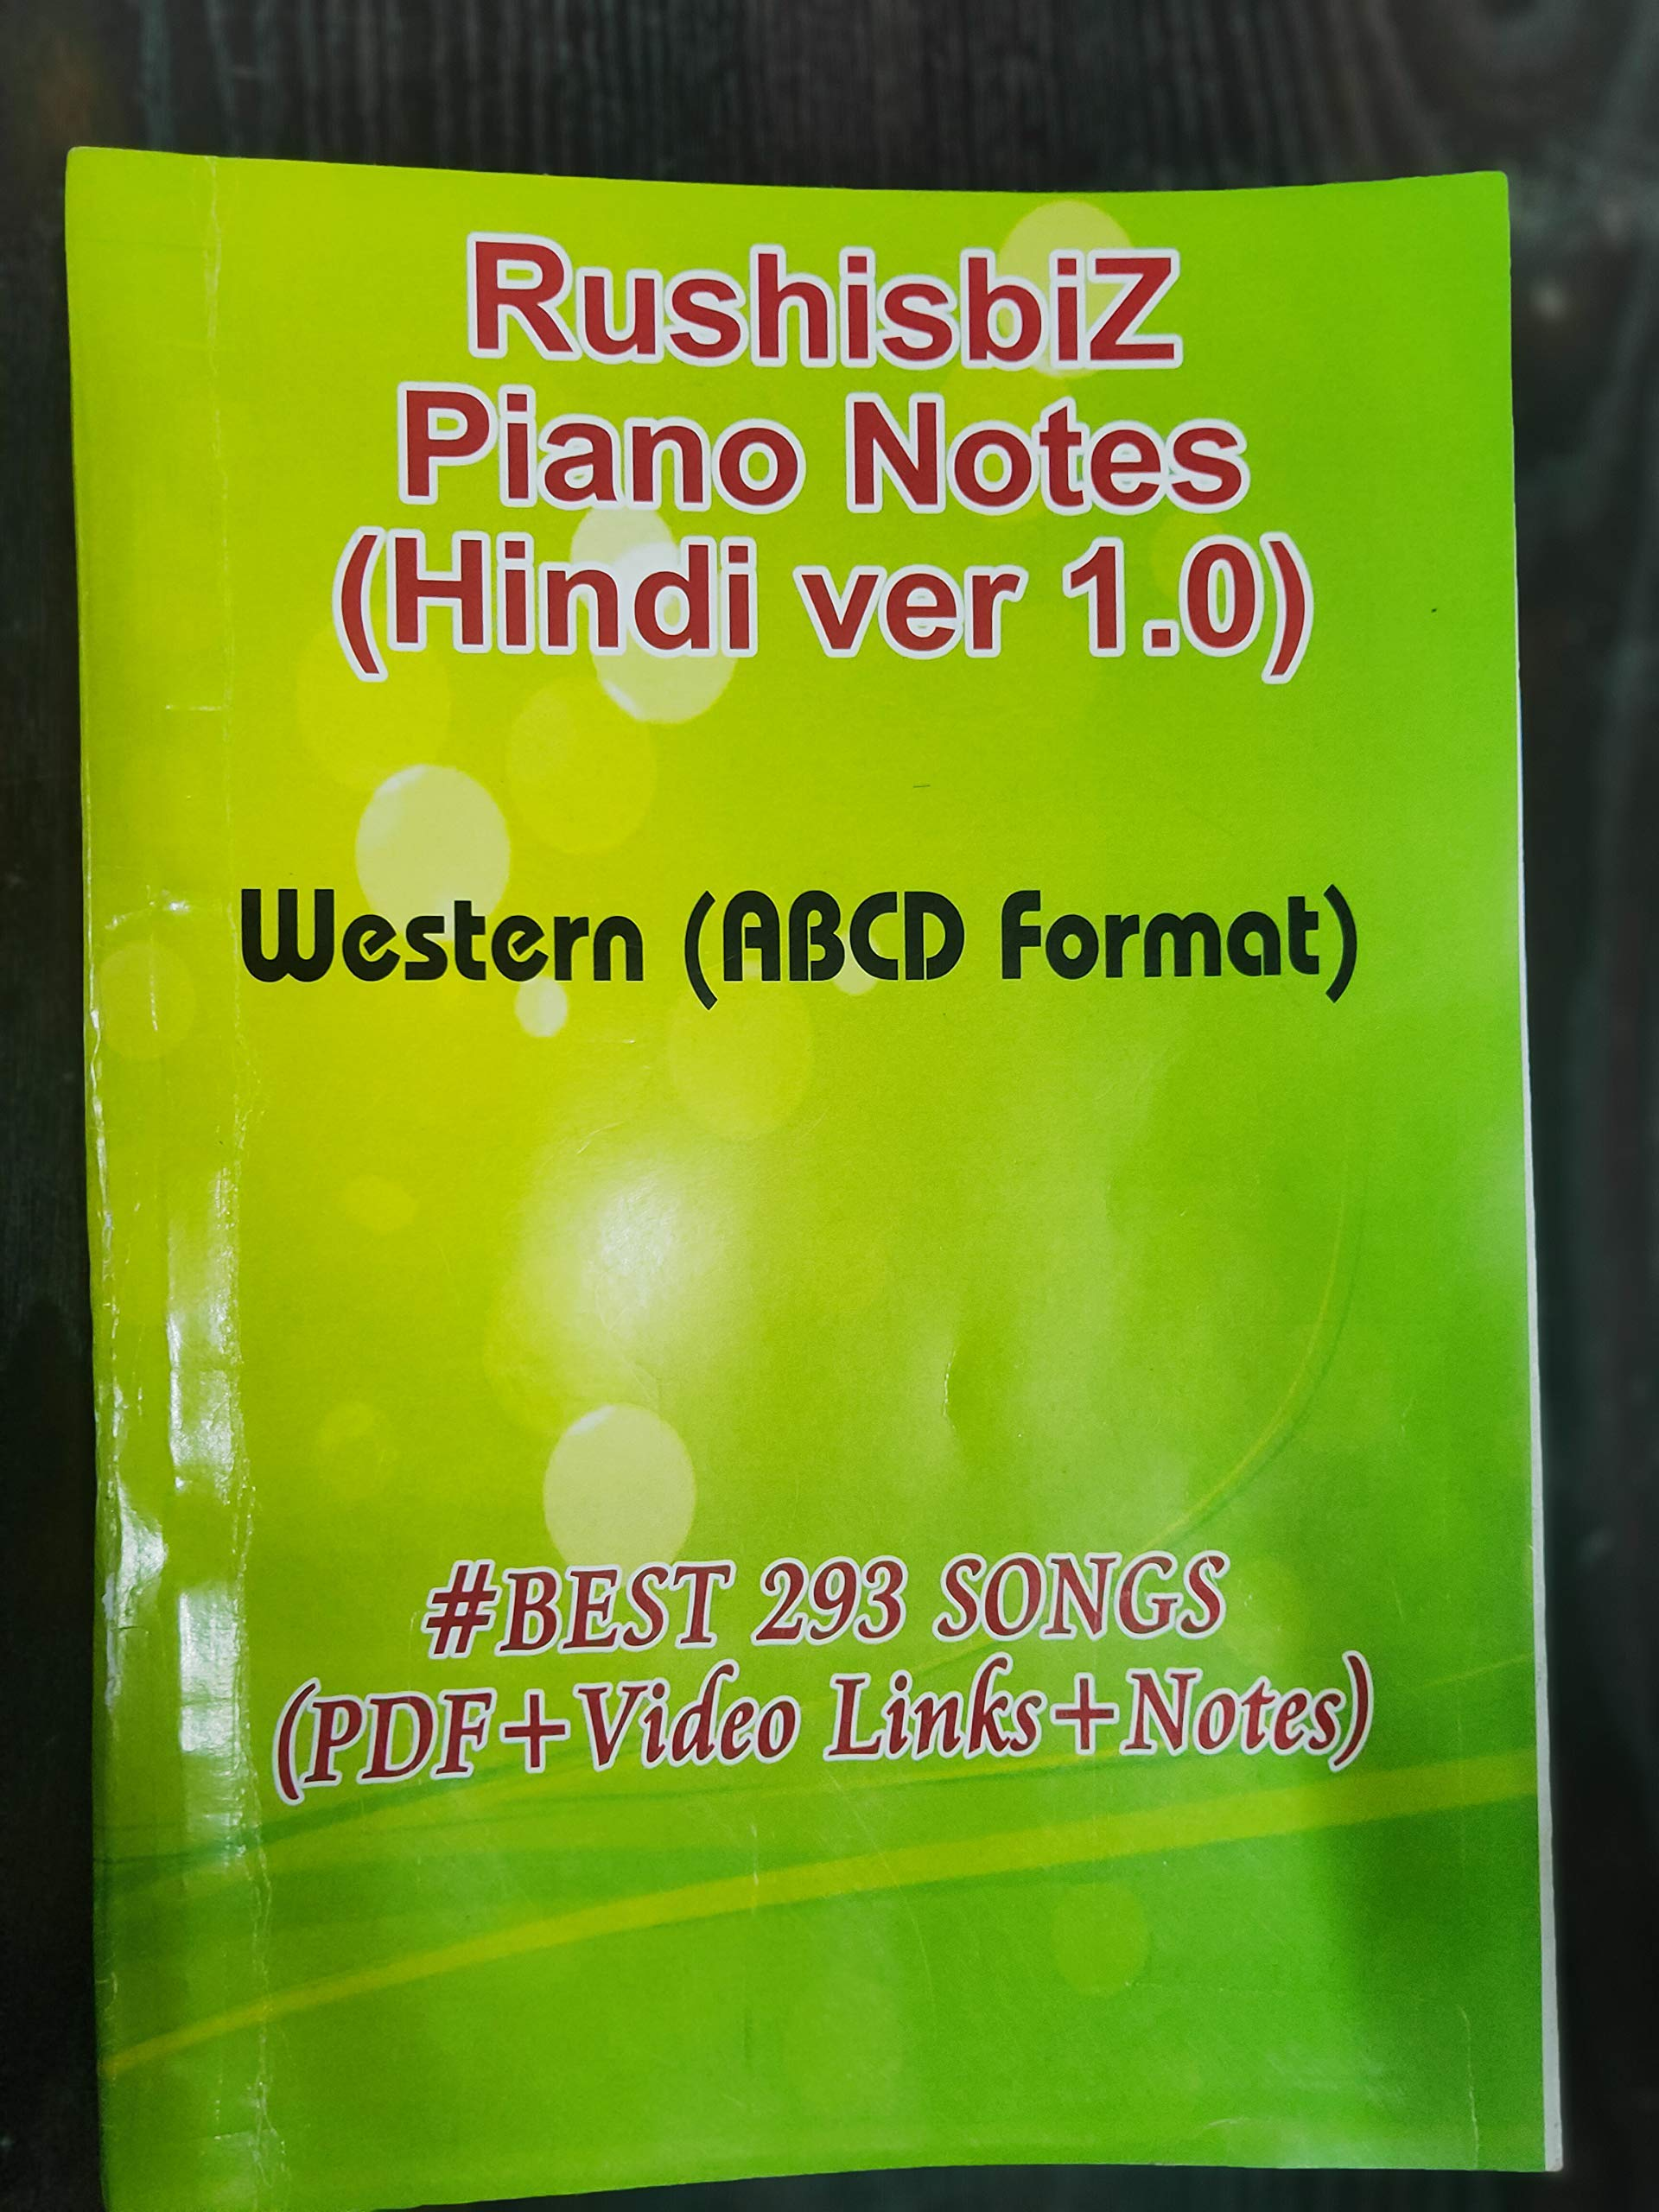 Buy Piano Book Best 293 Songs Rushisbiz Piano Notes Hindi Ver 1 0 Western Abcd Format Video Links Notes Scales Pdf Book Online At Low Prices In India Piano Book Best The song is great to be played for any marriages or weddings and so the sheet music is mostly the song is beautifully sung by sonu nigam and neeti mohan as they create a soothing romantic mood. rushisbiz piano notes hindi ver 1 0